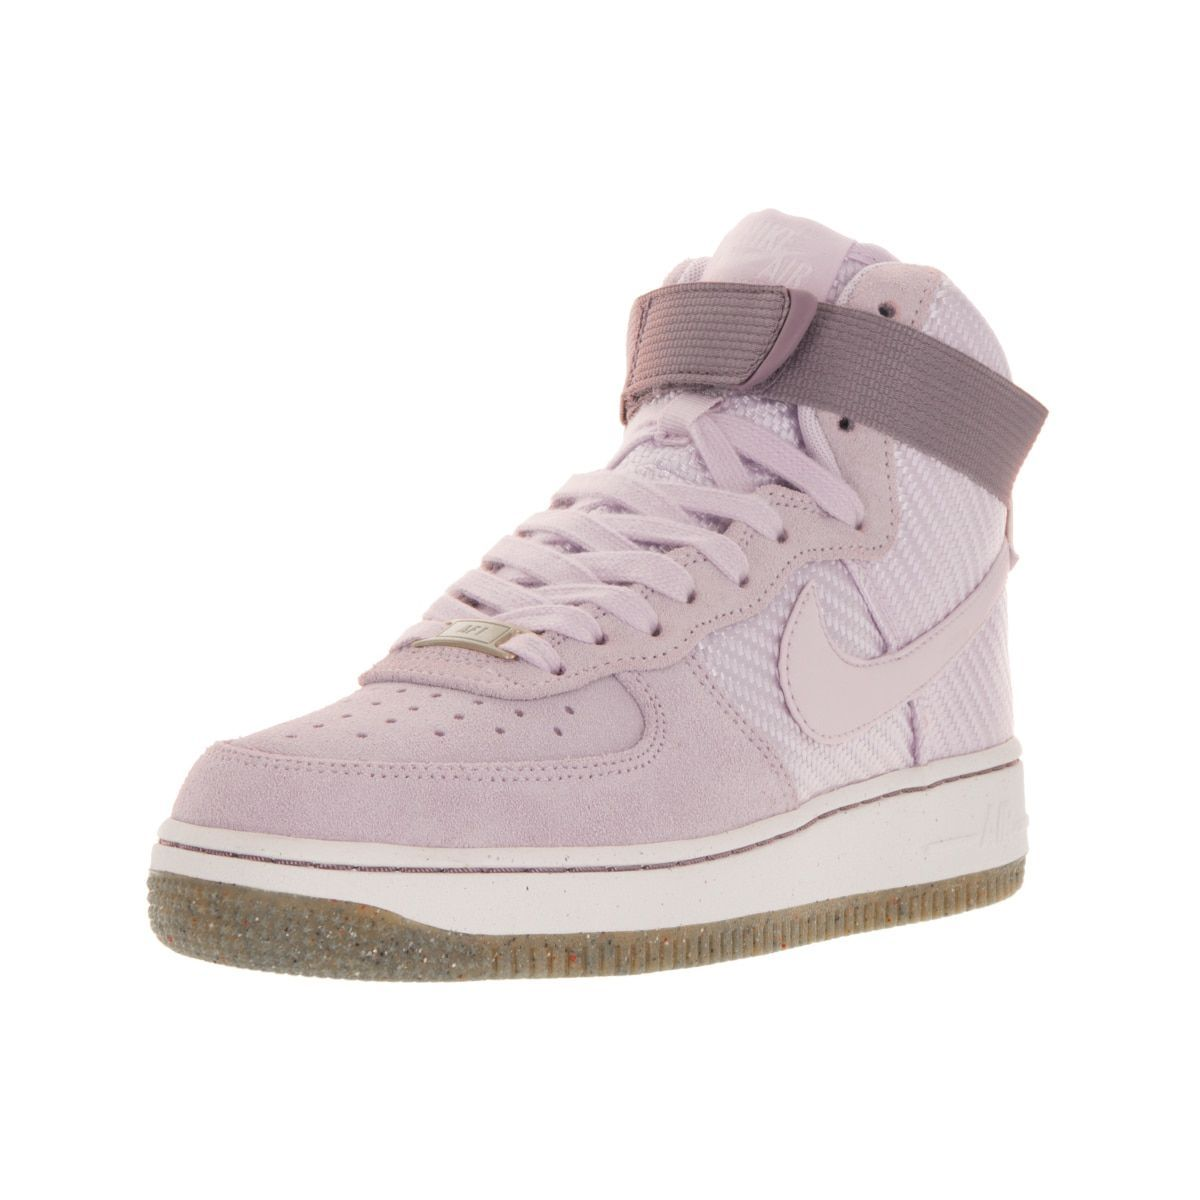 ... purchase cheap 621cb 57525 Nike Womens Air Force 1 Hi Prm Bleached  LilacBleached Lilac Basketball Shoes ... 95b42534ede0